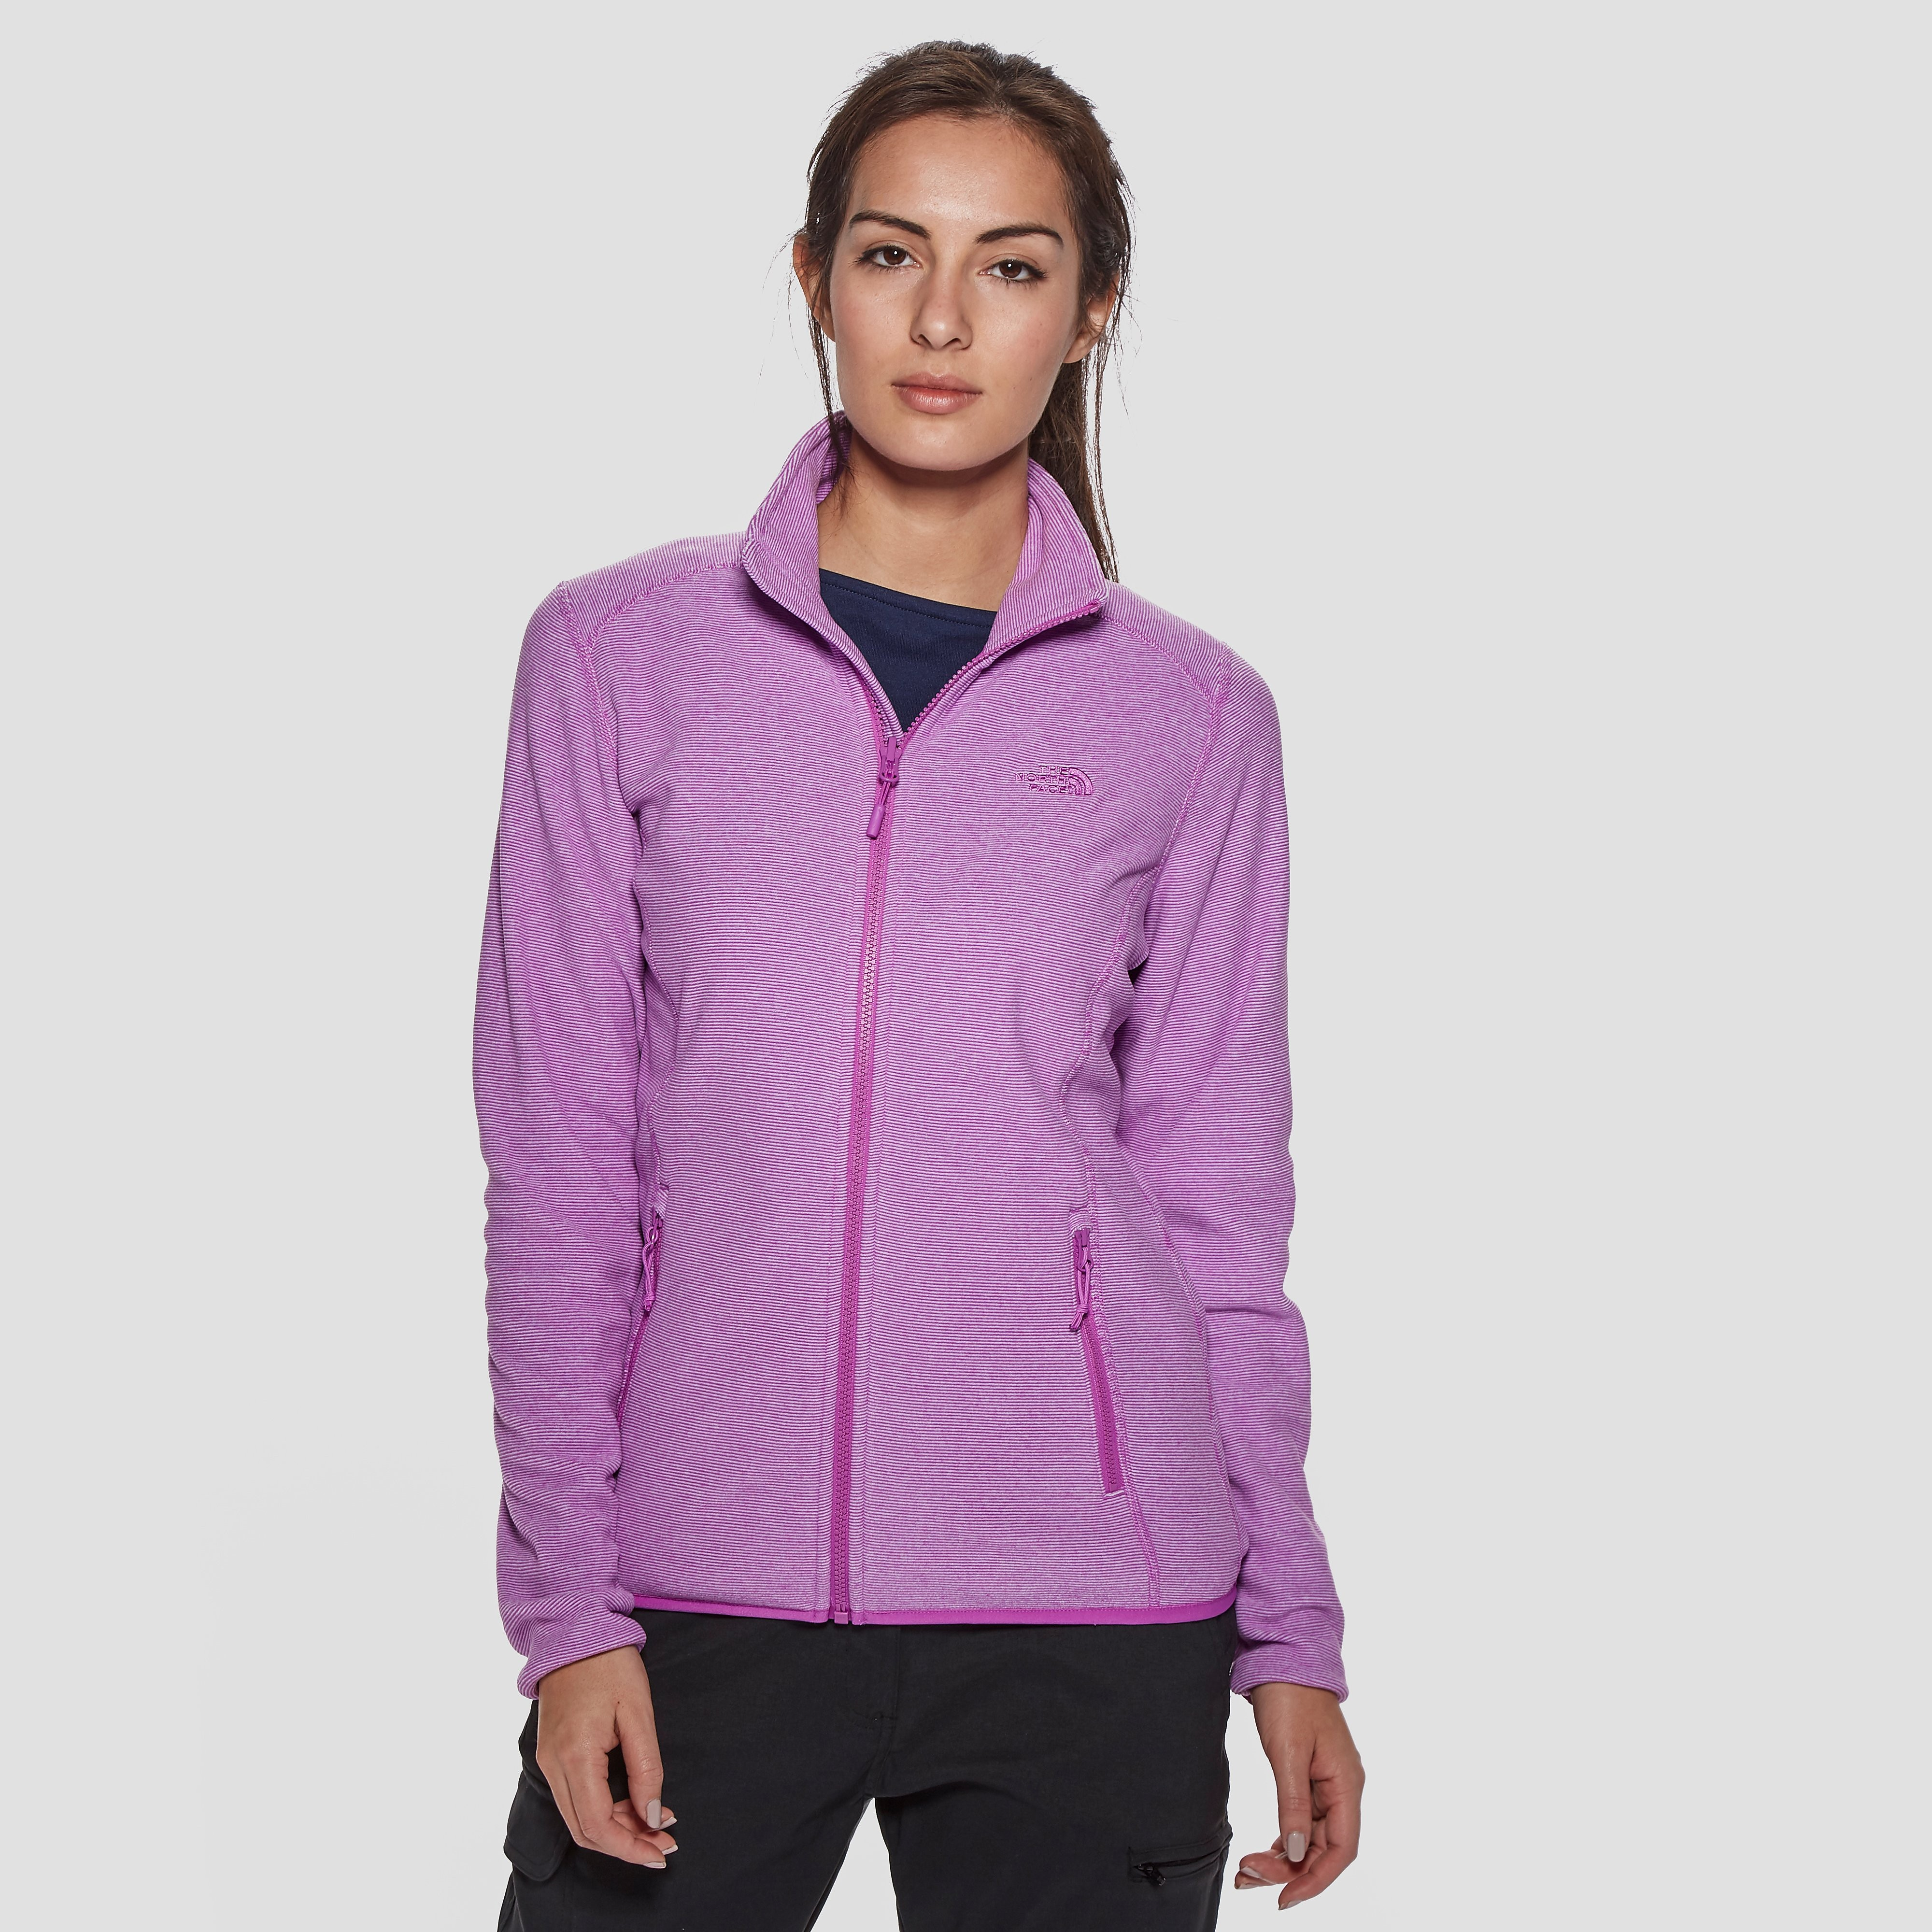 The North Face Glacier Quarter Zip Women's Fleece